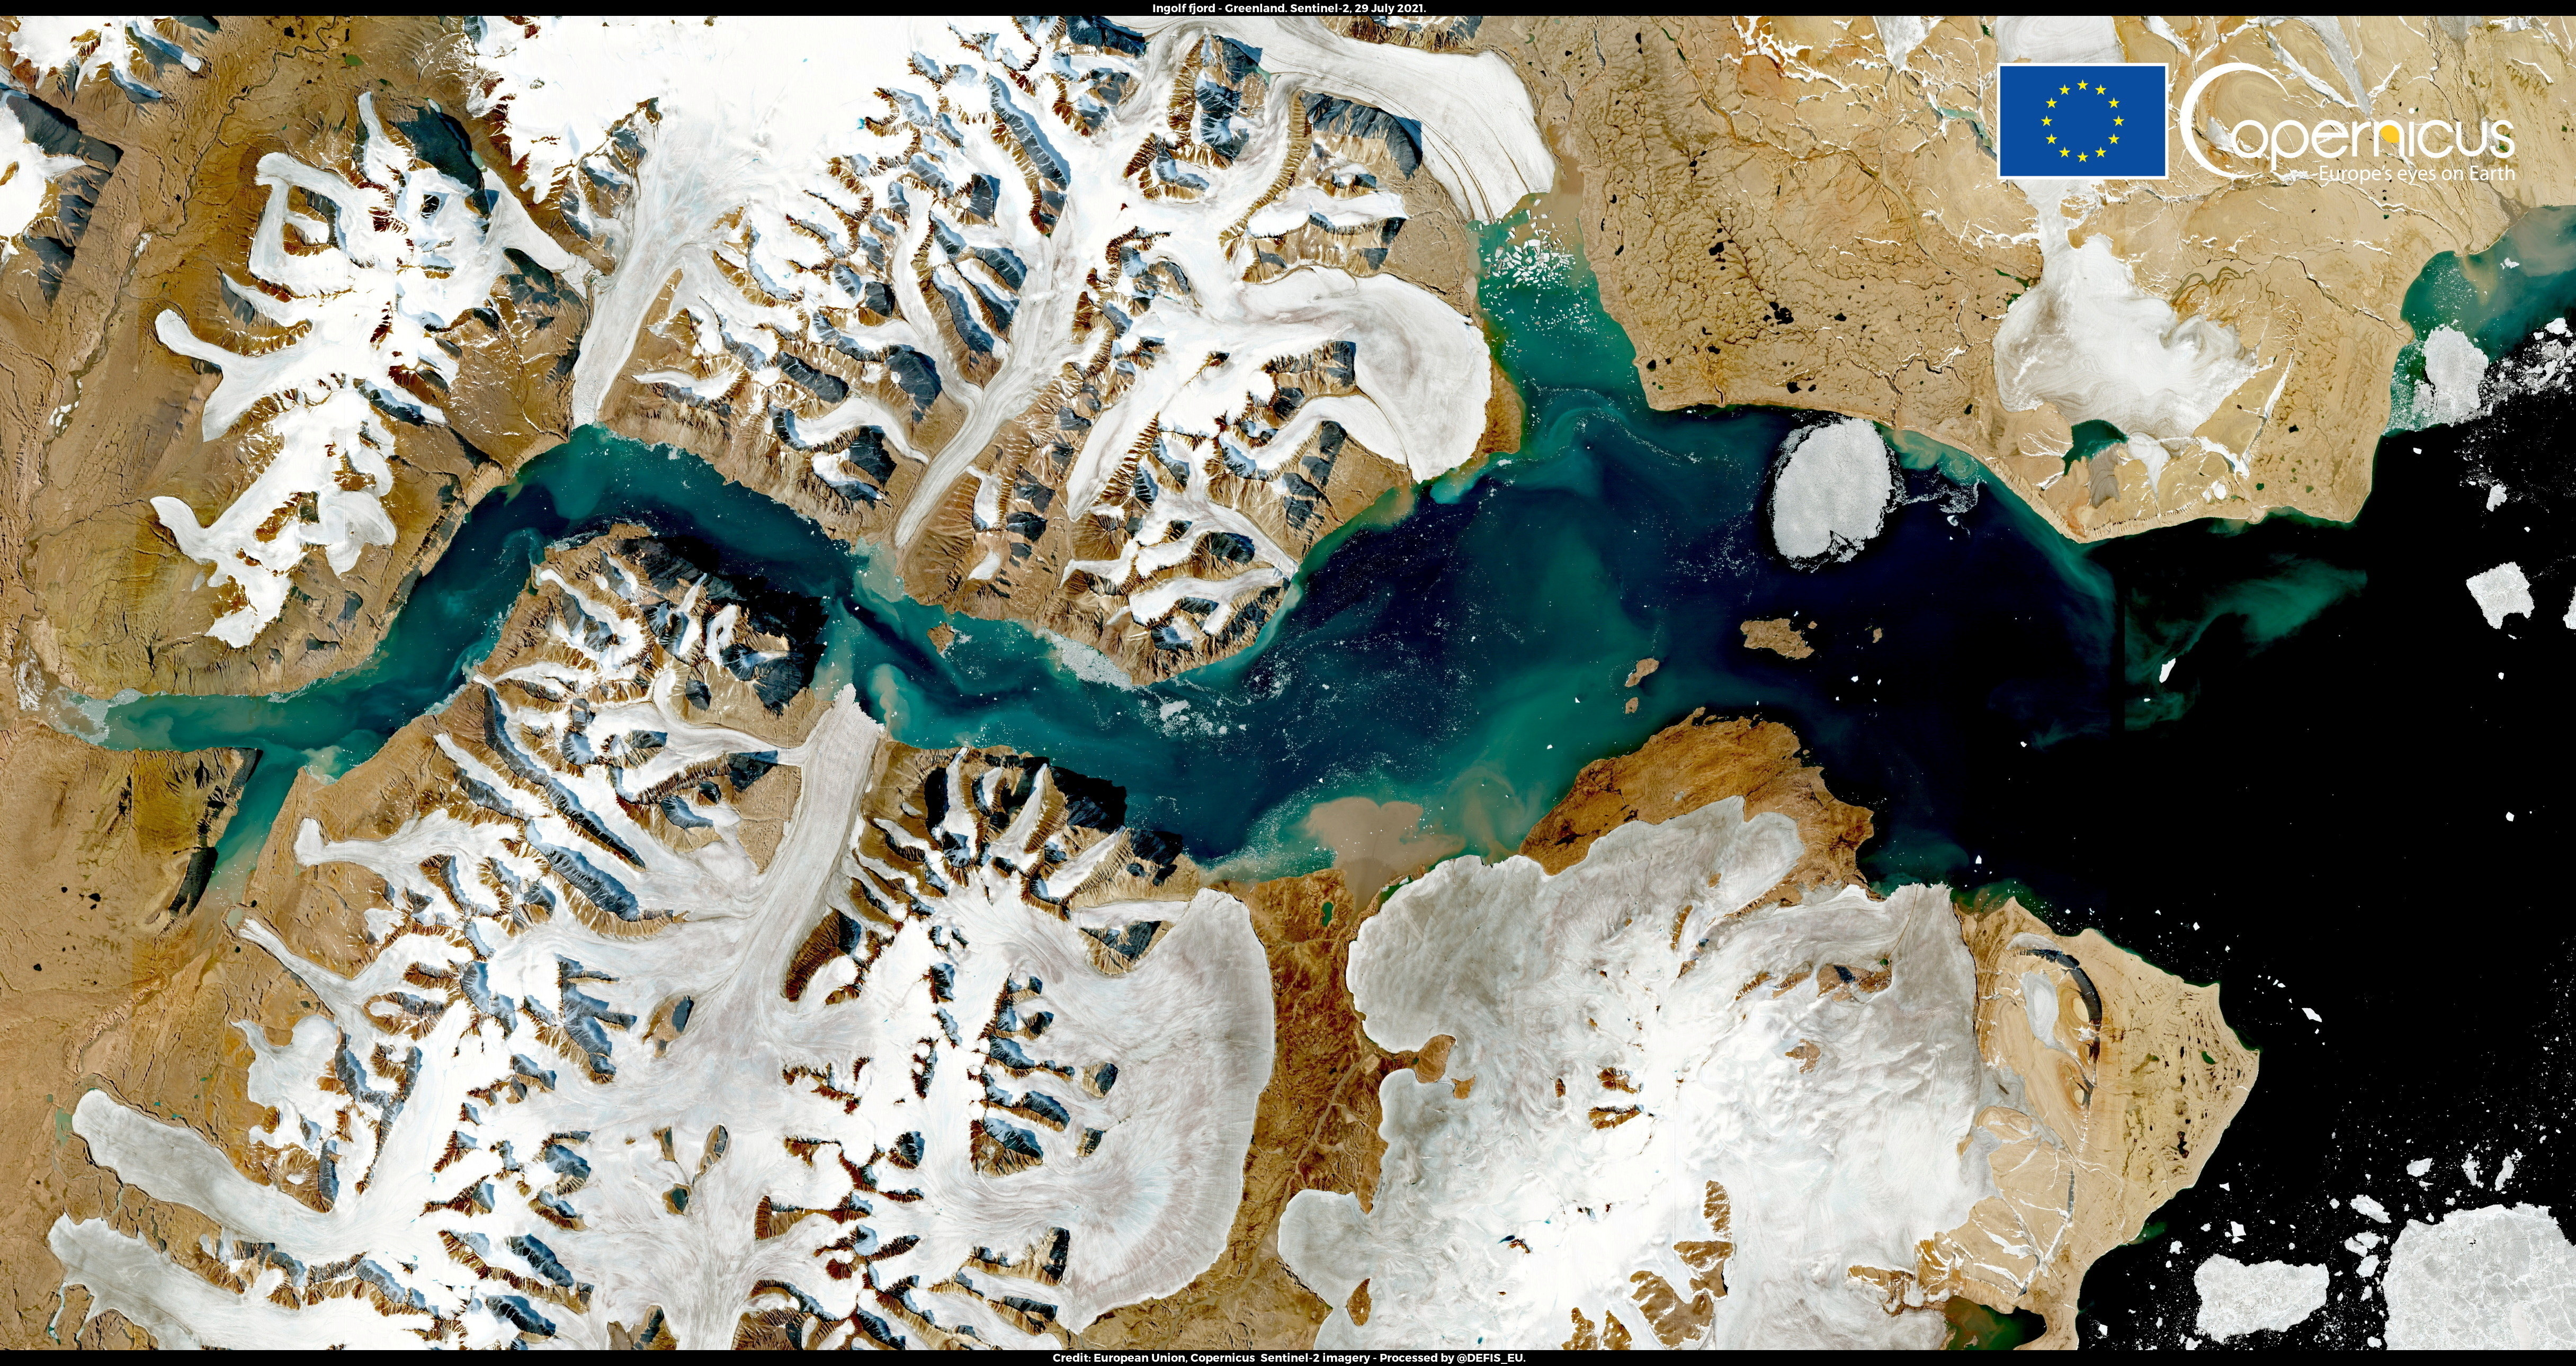 A satellite image shows Ingolf Fjord, Greenland July 29, 2021.